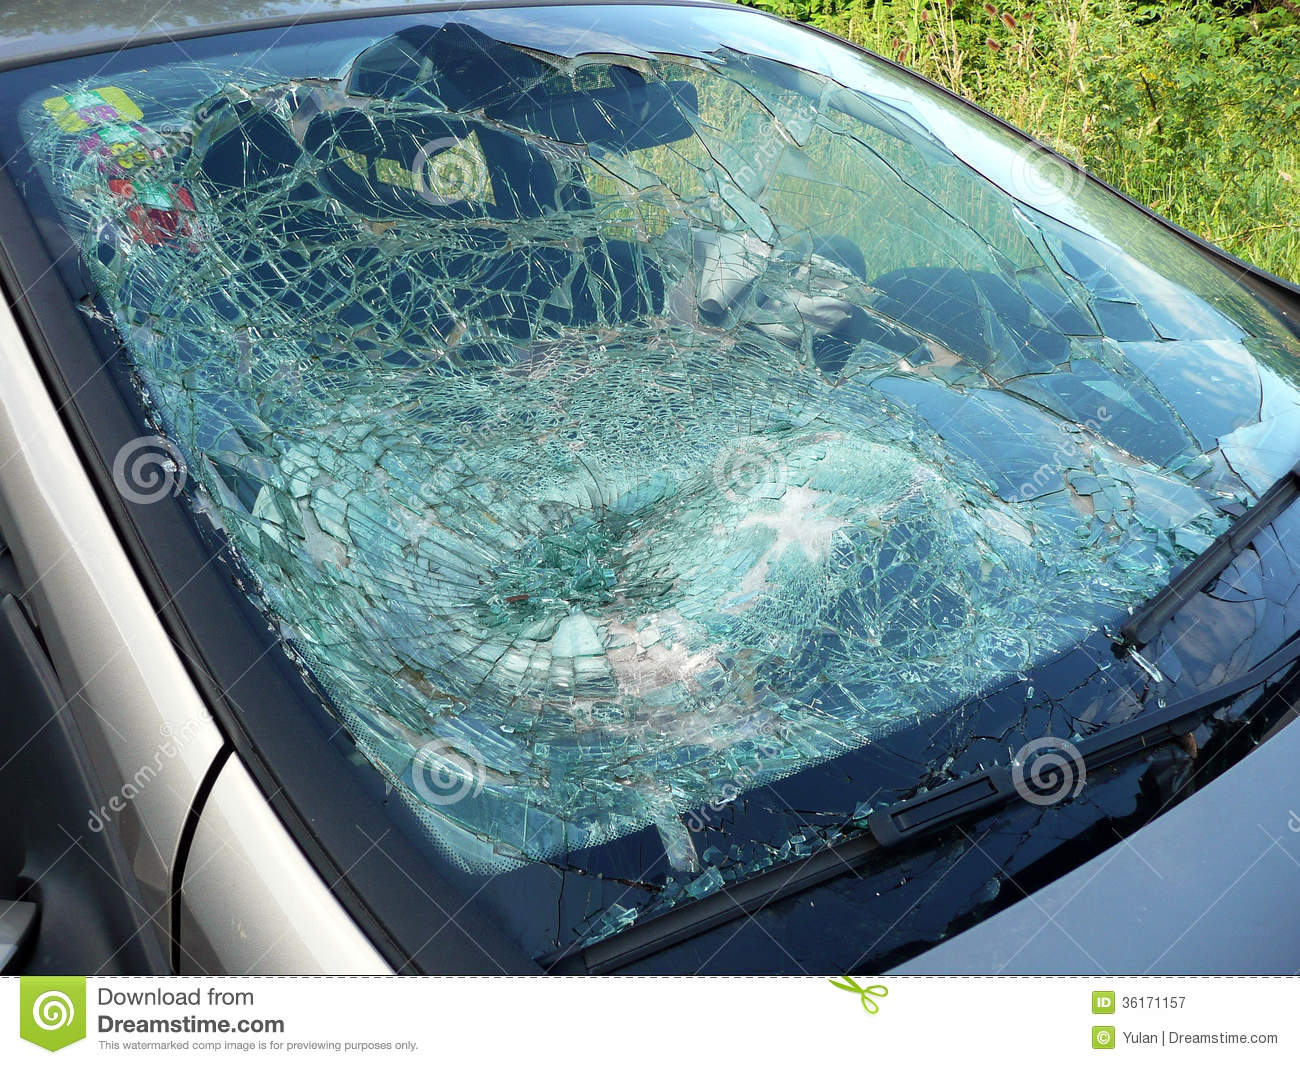 Car Window Screen Replacement Prices